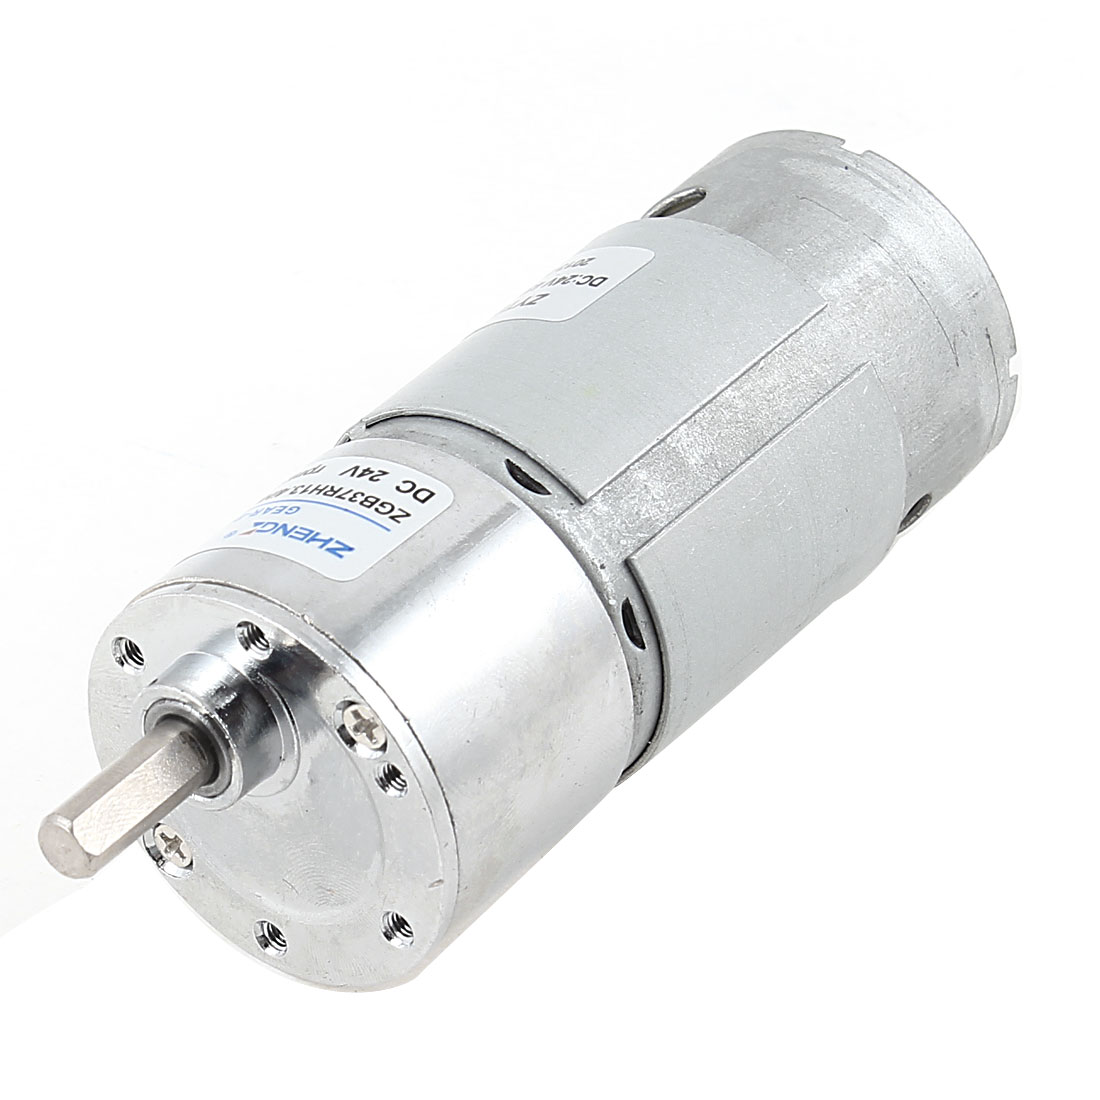 DC 24V 300RPM 6mm Shaft Dia Cylinder Magnetic Electric Geared Box Motor